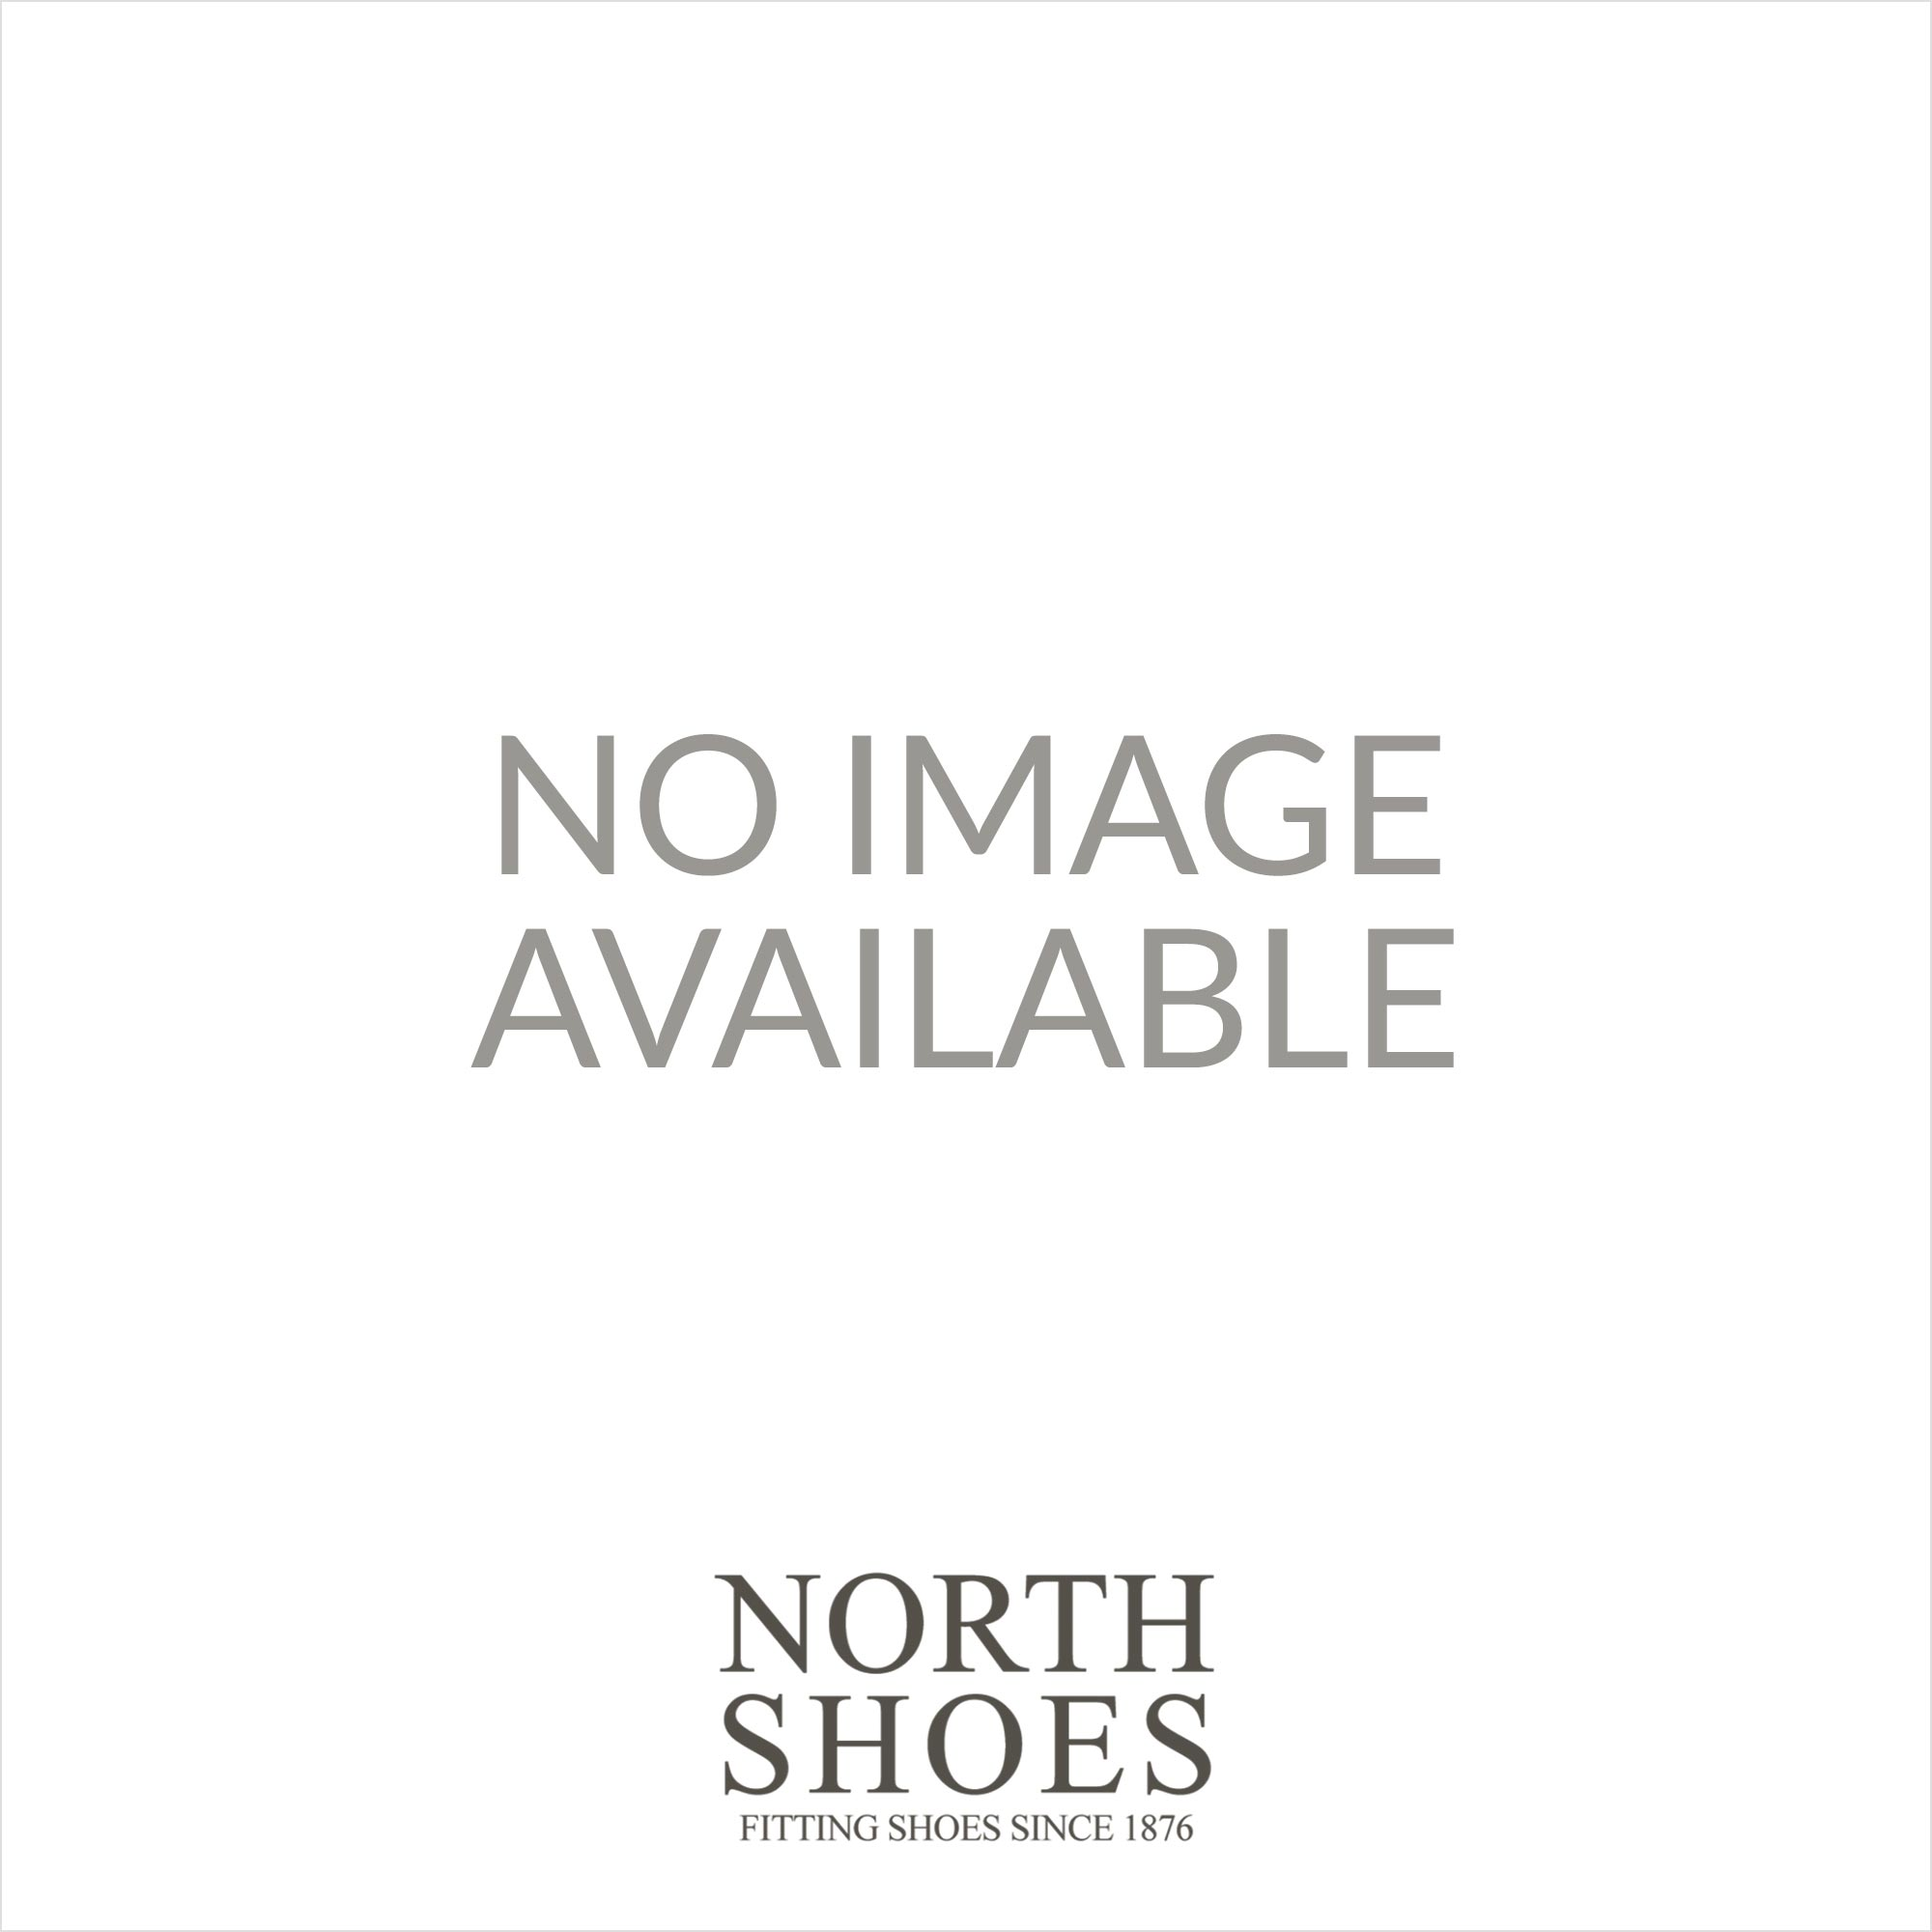 52b1da744ac Clarks Kite Hero Brown Tweed Textile Mens Slip On Mule Slippers - Clarks  from North Shoes UK